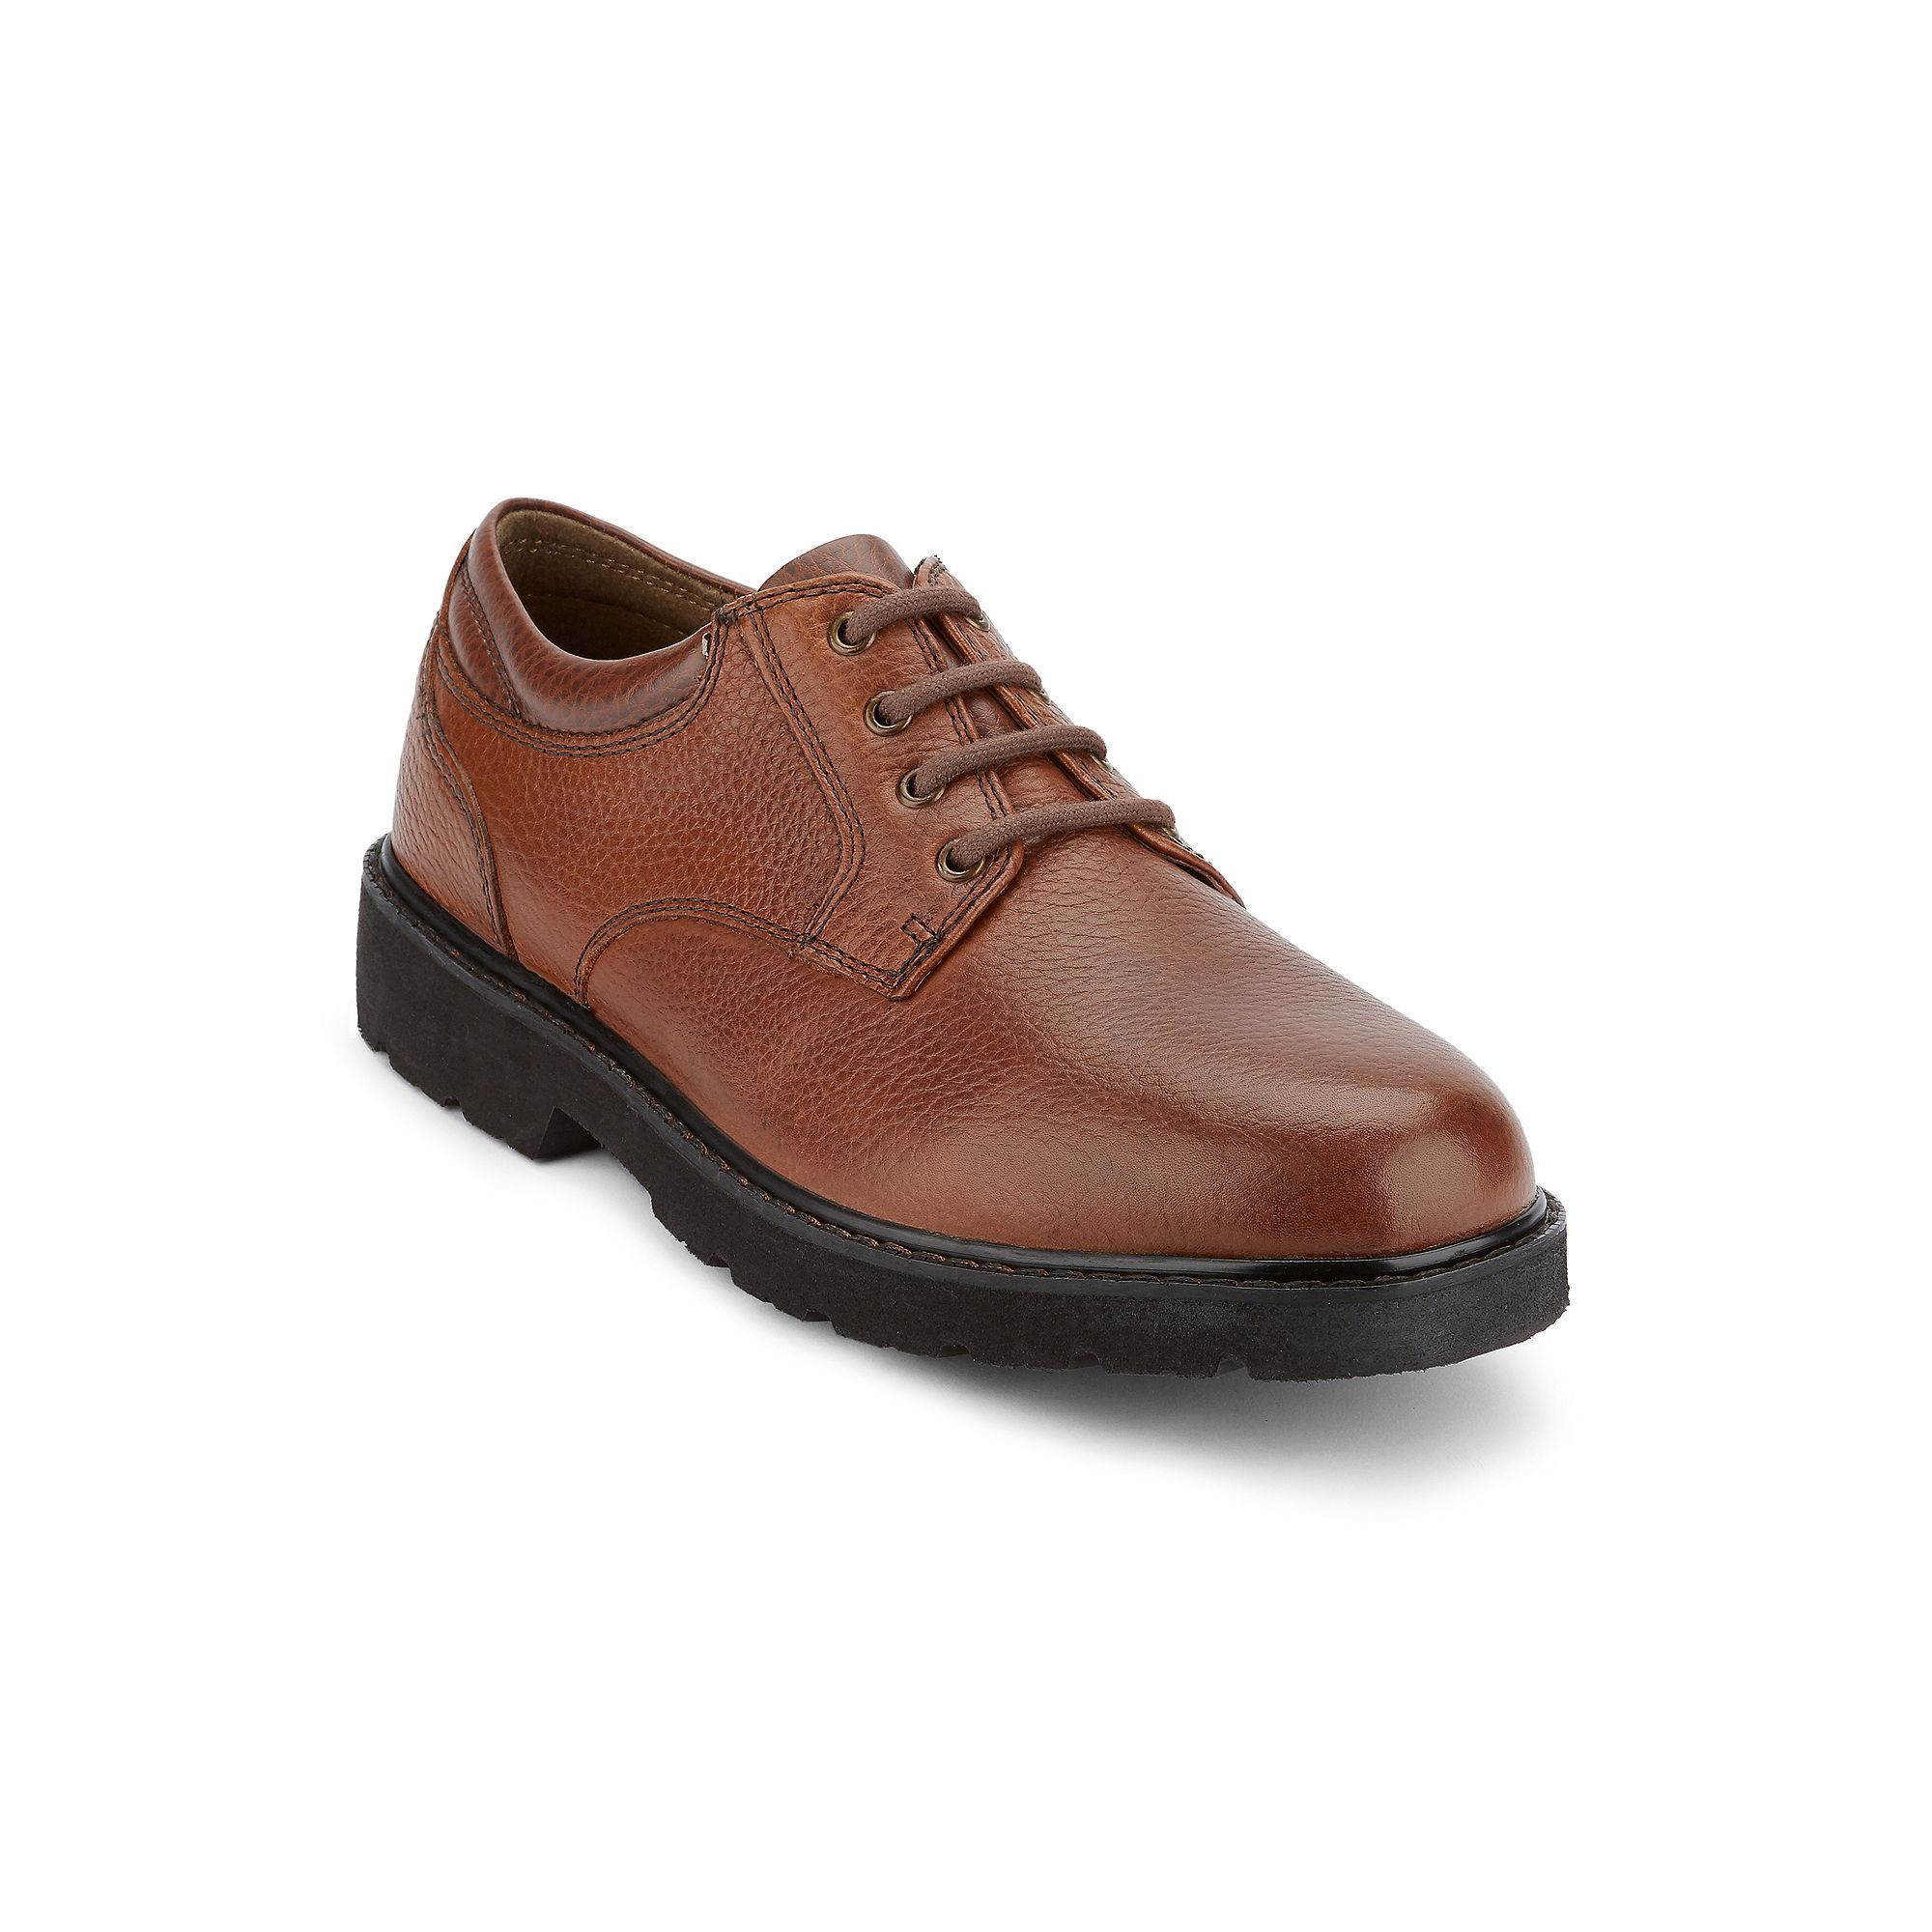 Dockers Shelter Men's Water Resistant Oxford Shoes, Size